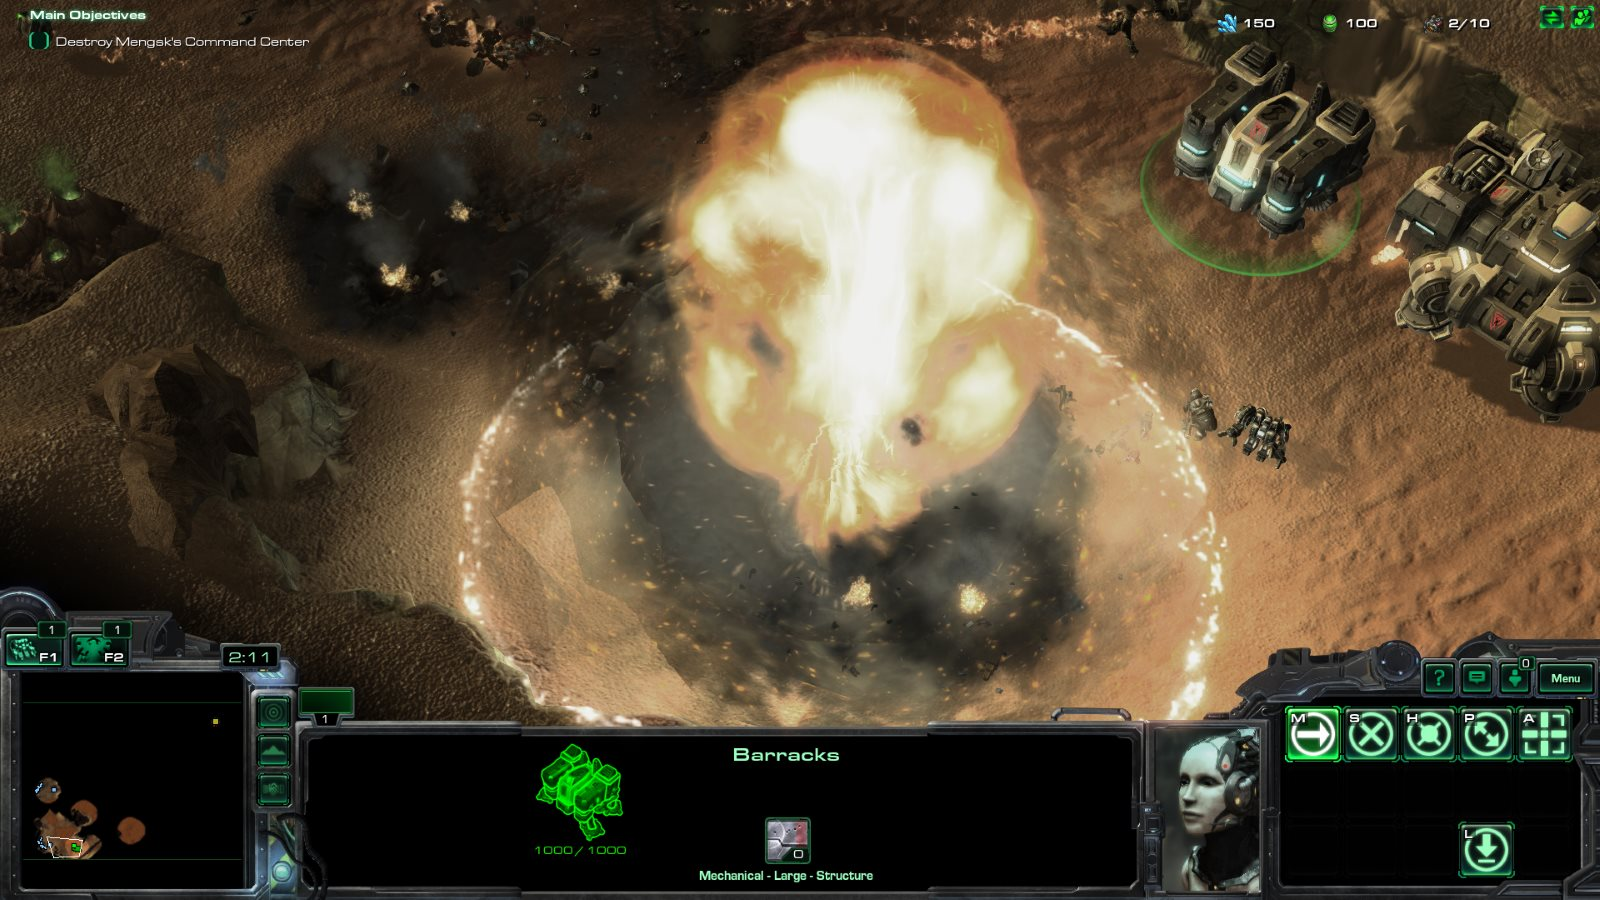 StarCraft 2's nuke effects make some missions a bit more intense.